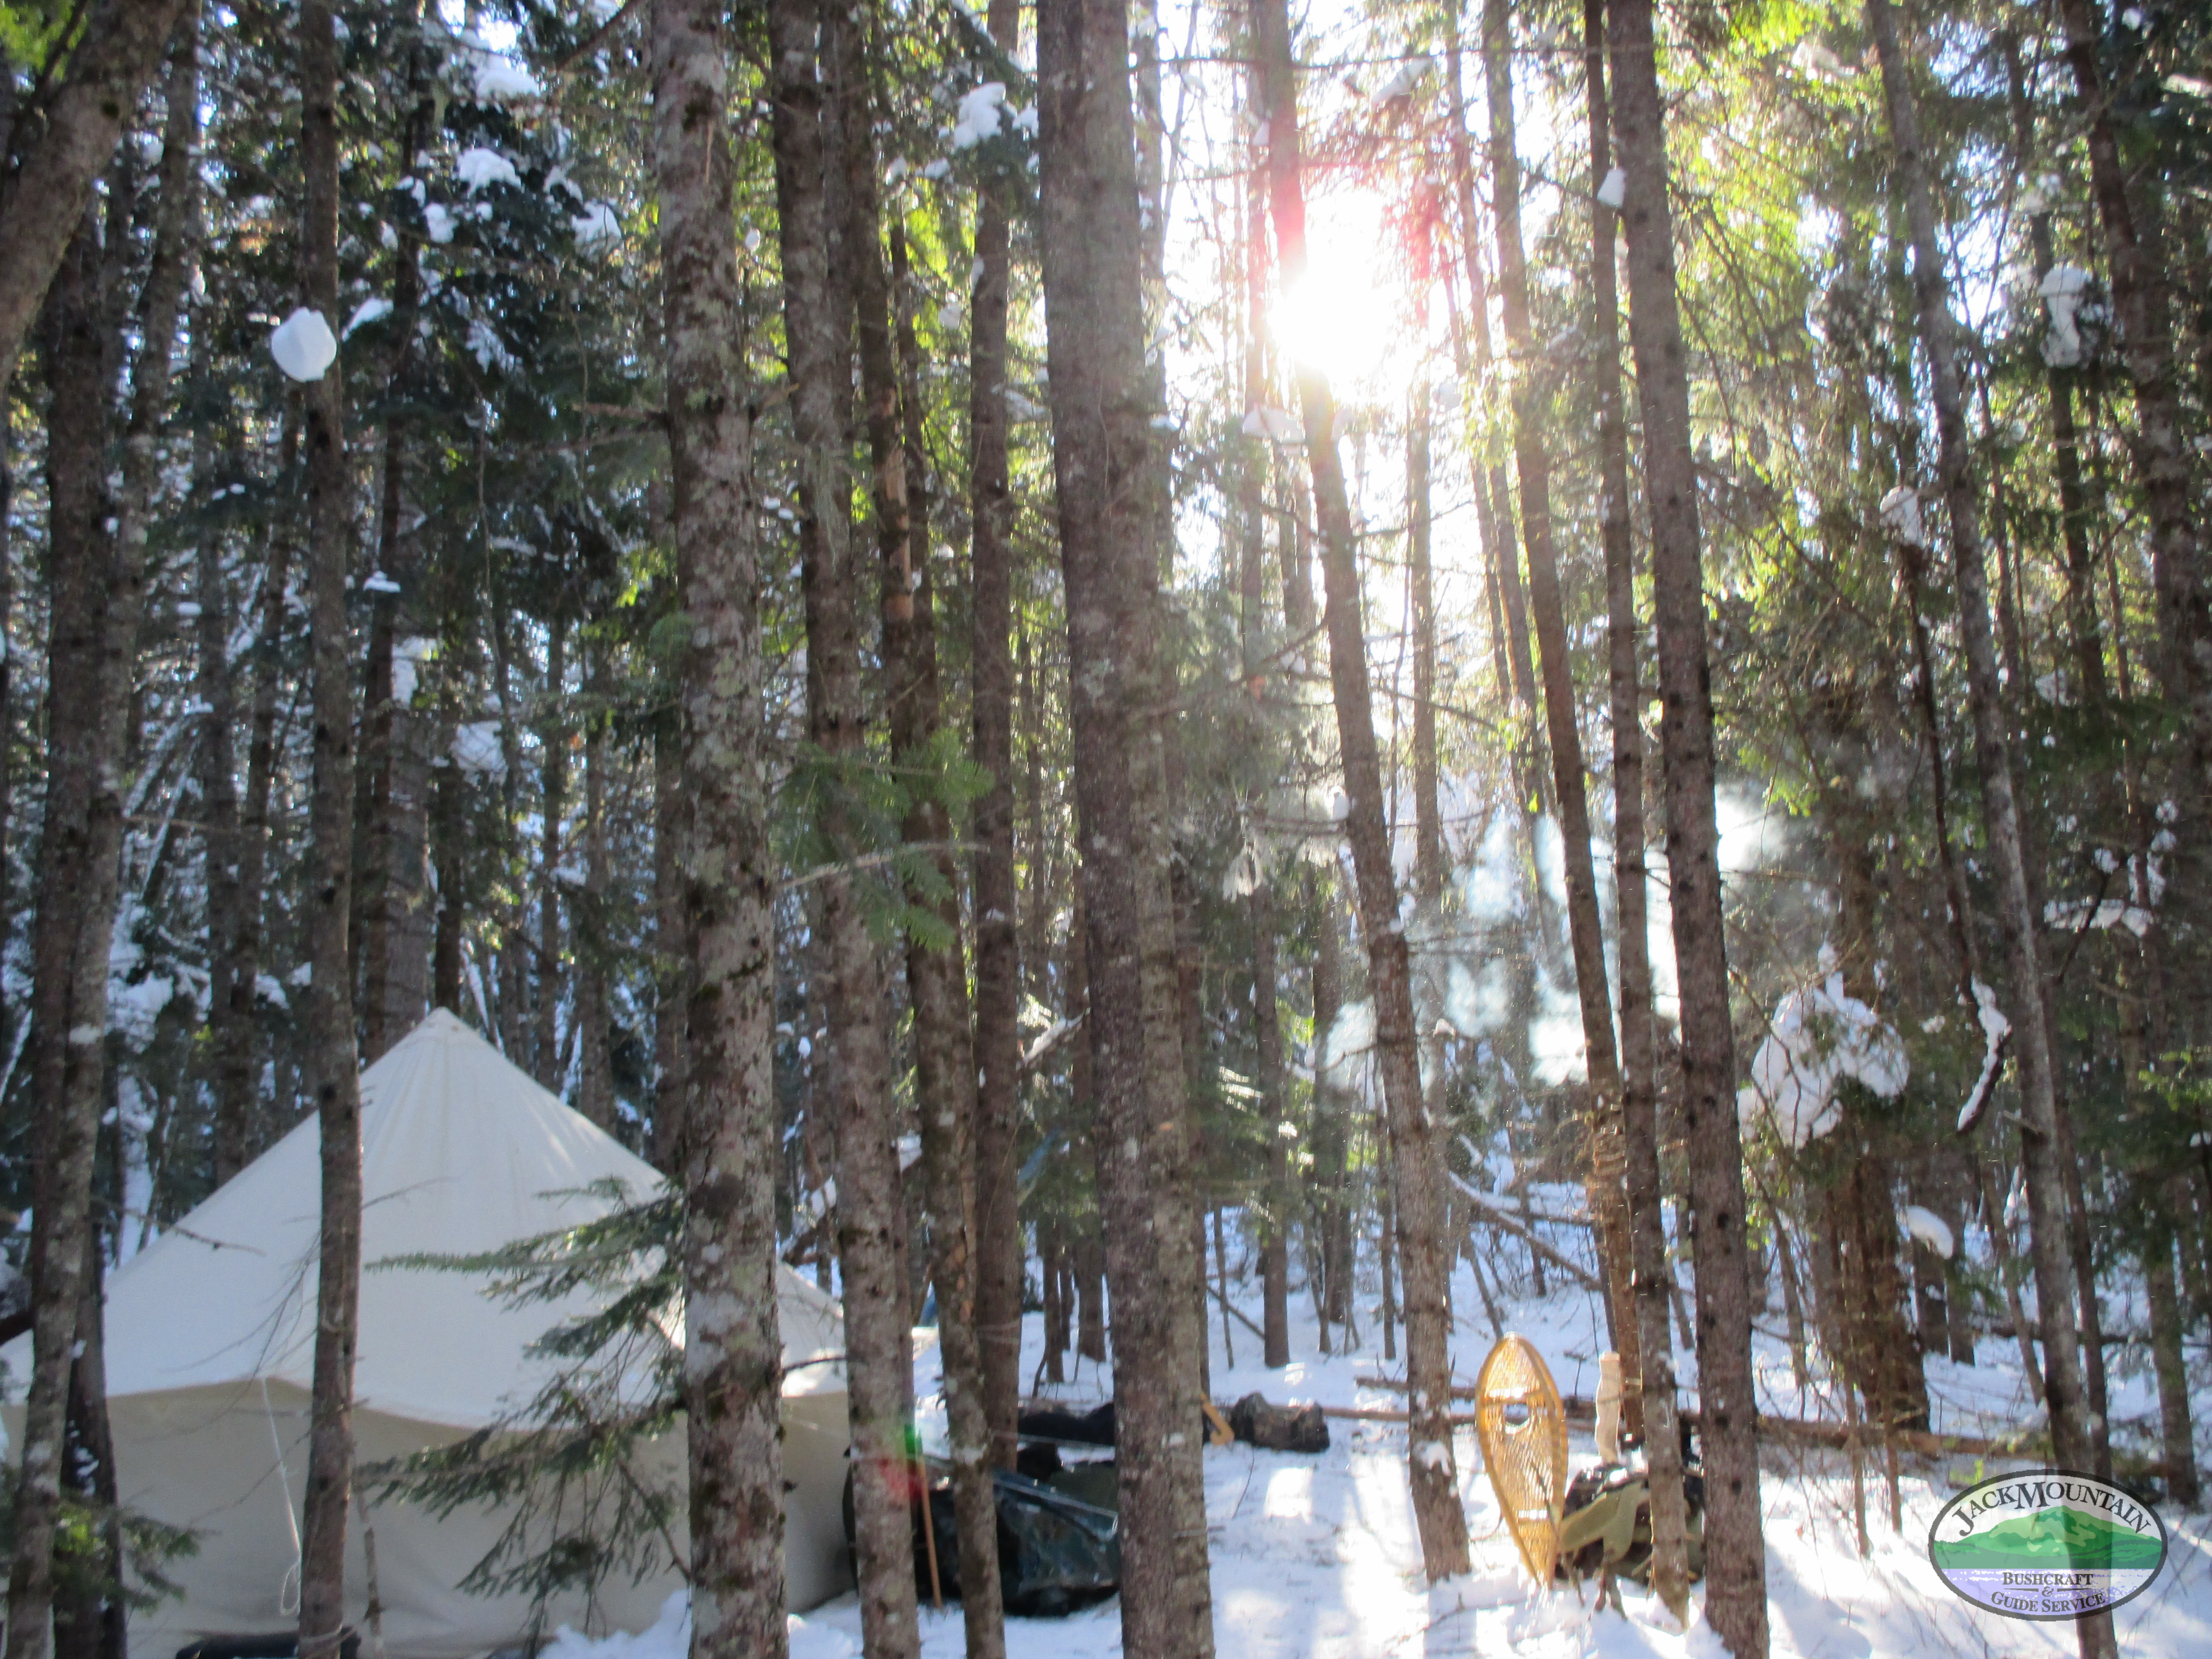 On The Trail: Morning Sun Through The Trees